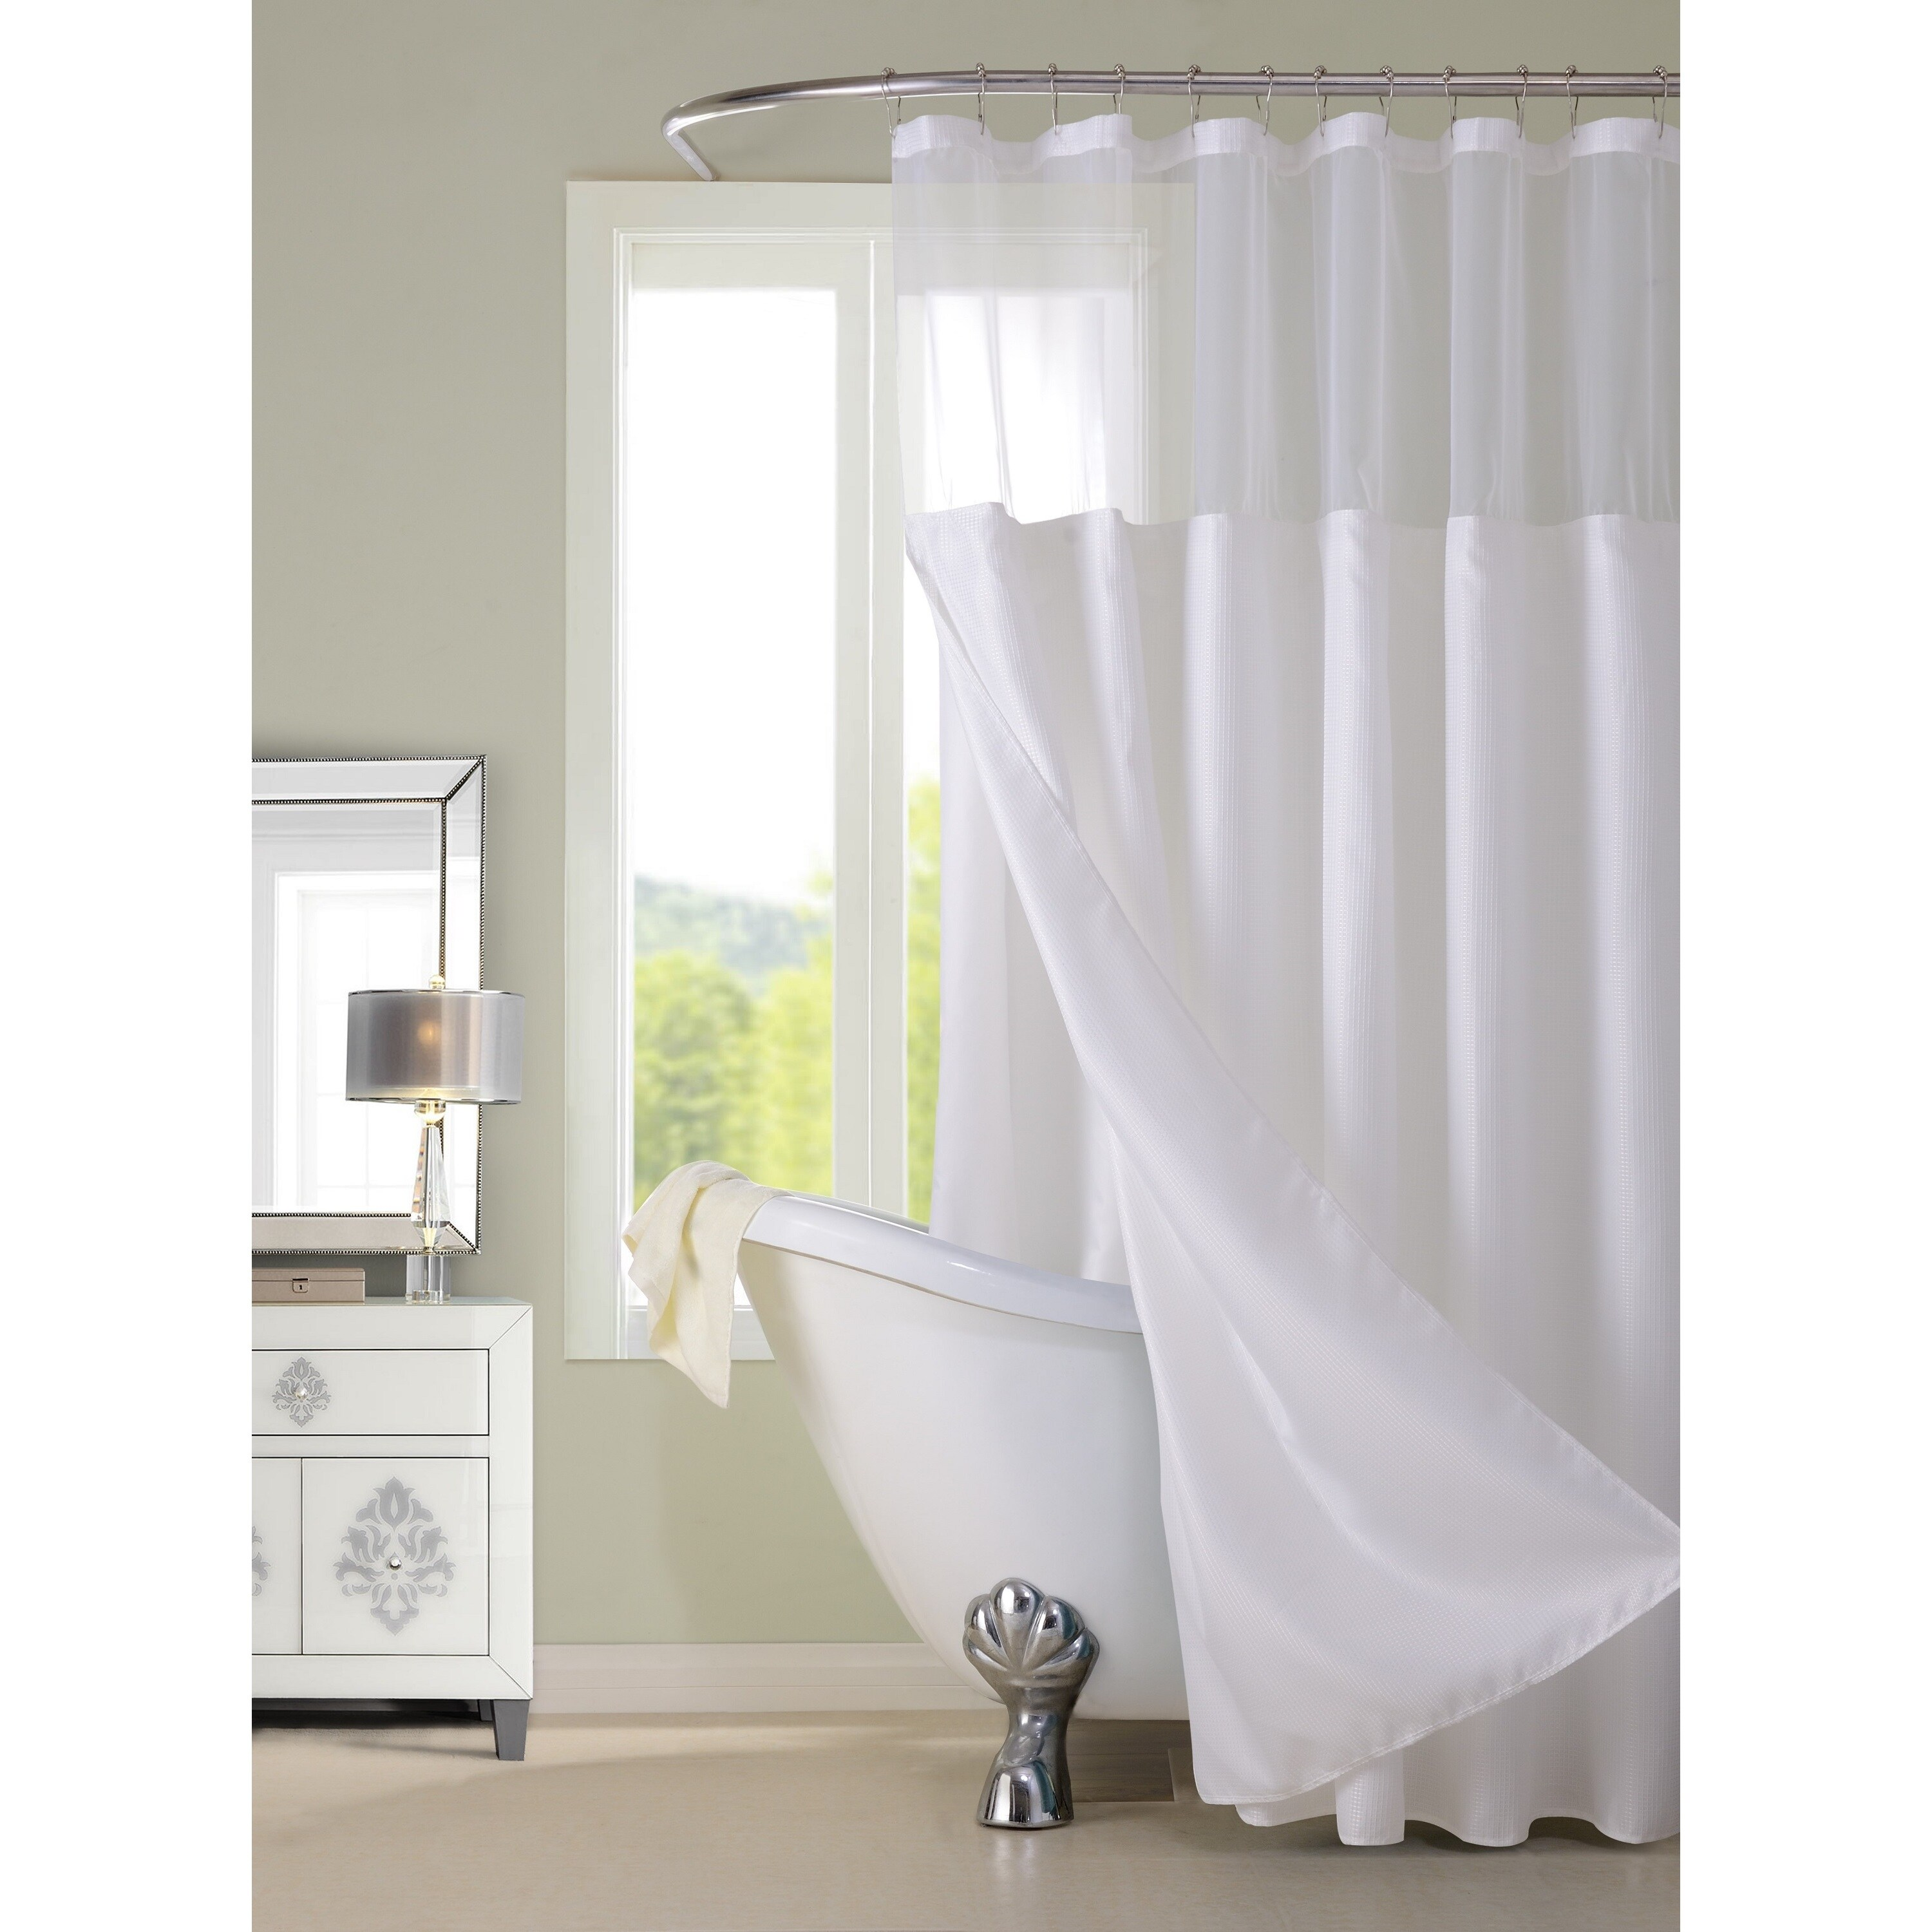 Gracewood Hollow Asimov Hotel Shower Curtain With Detachable Liner Free Shipping On Orders